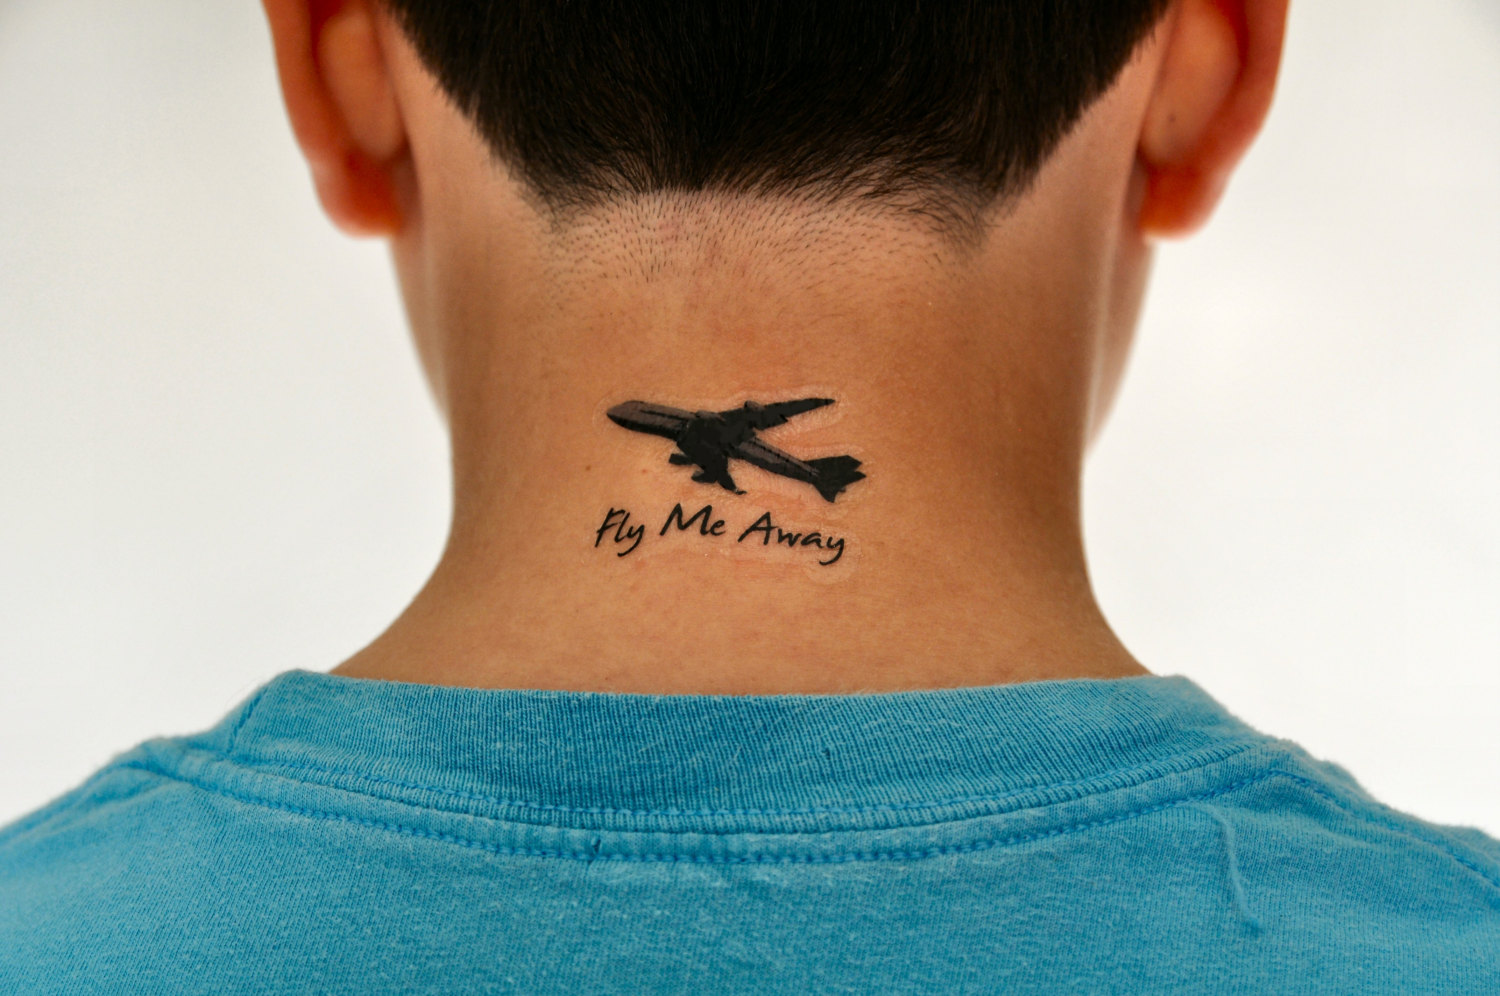 Airplane Tattoos Designs Ideas And Meaning Tattoos For You Ideas And Designs